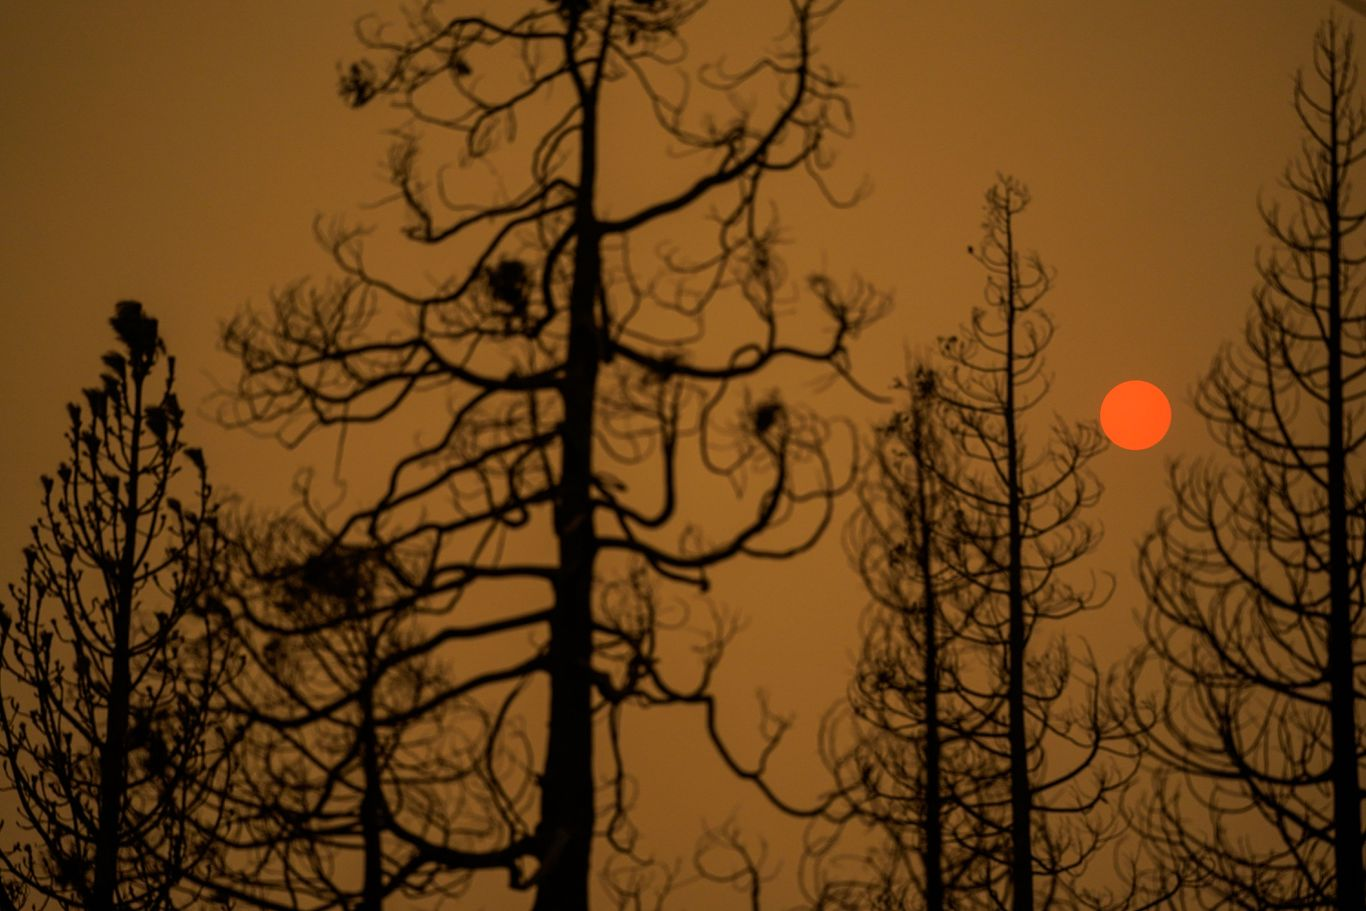 Severe wildfires in the West may already be altering the future of forests thumbnail